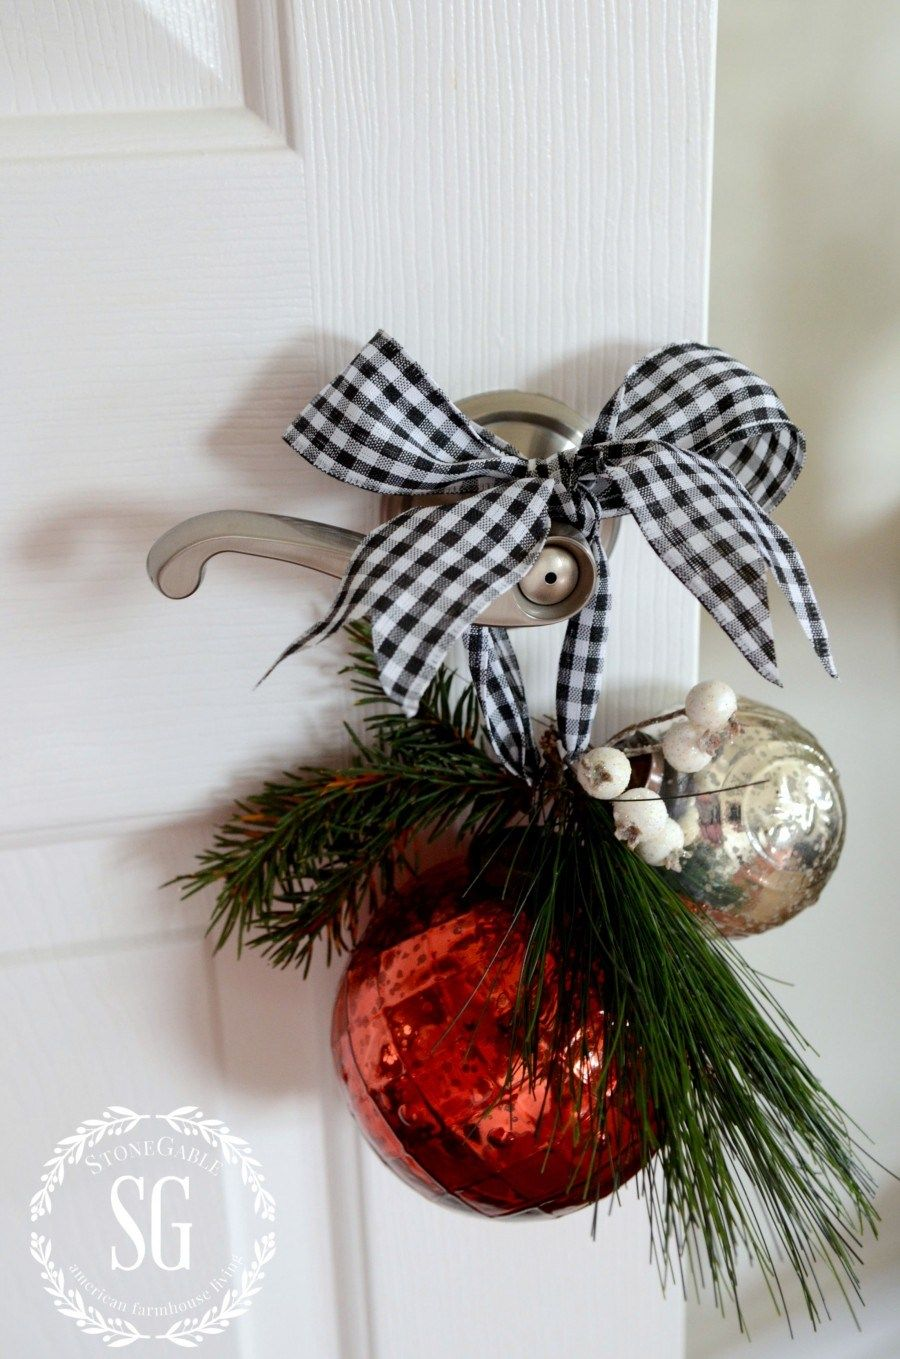 Christmas Ornaments around the Bathroom door Handle via StoneGable #ChristmasDecor #ChristmasBathroom